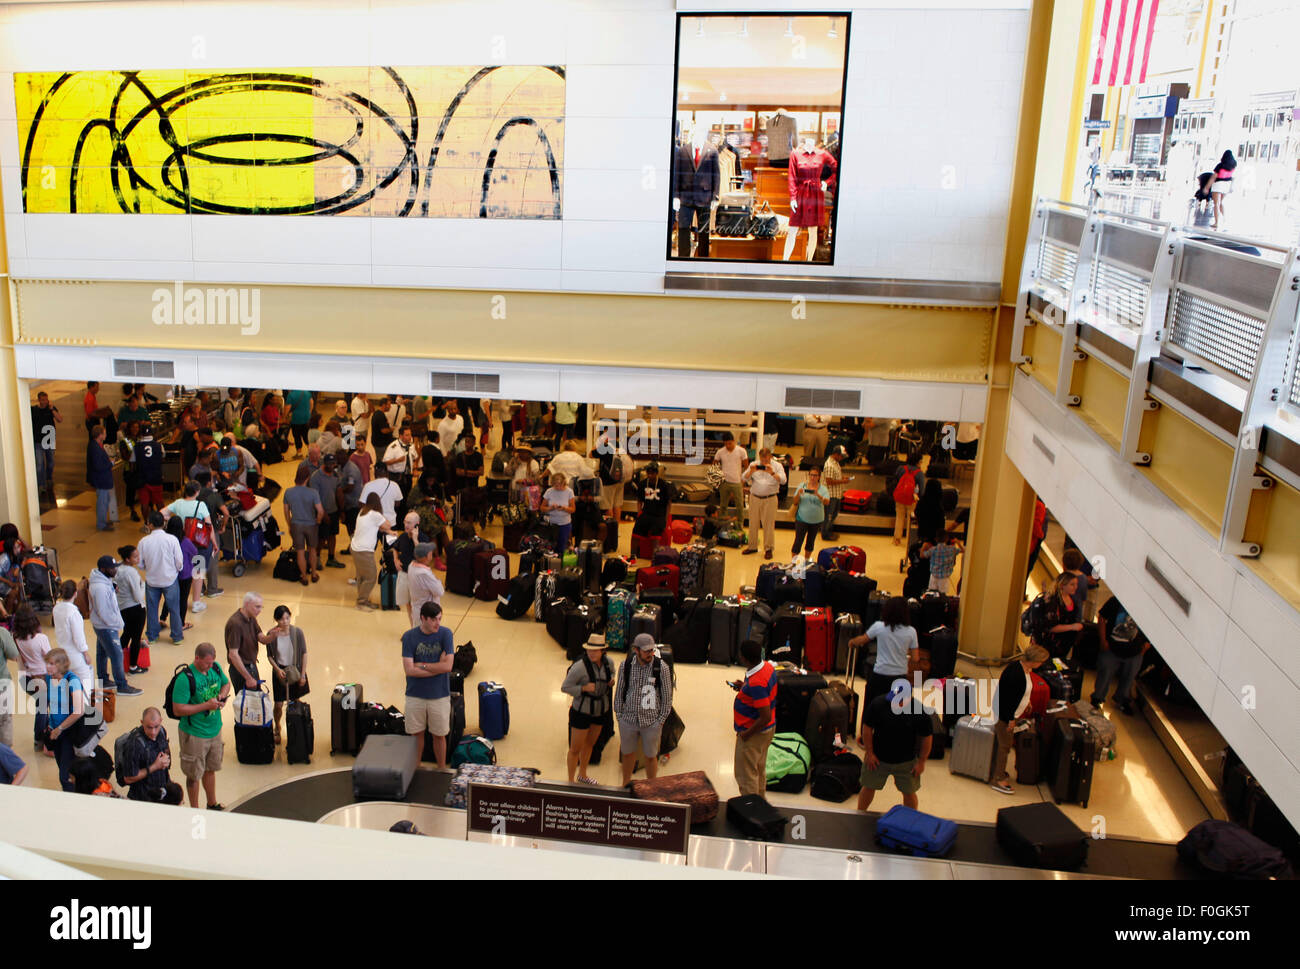 Washington, DC, USA. 15th Aug, 2015. Passengers wait to claim their baggages at Ronald Regan National Washington - Stock Image